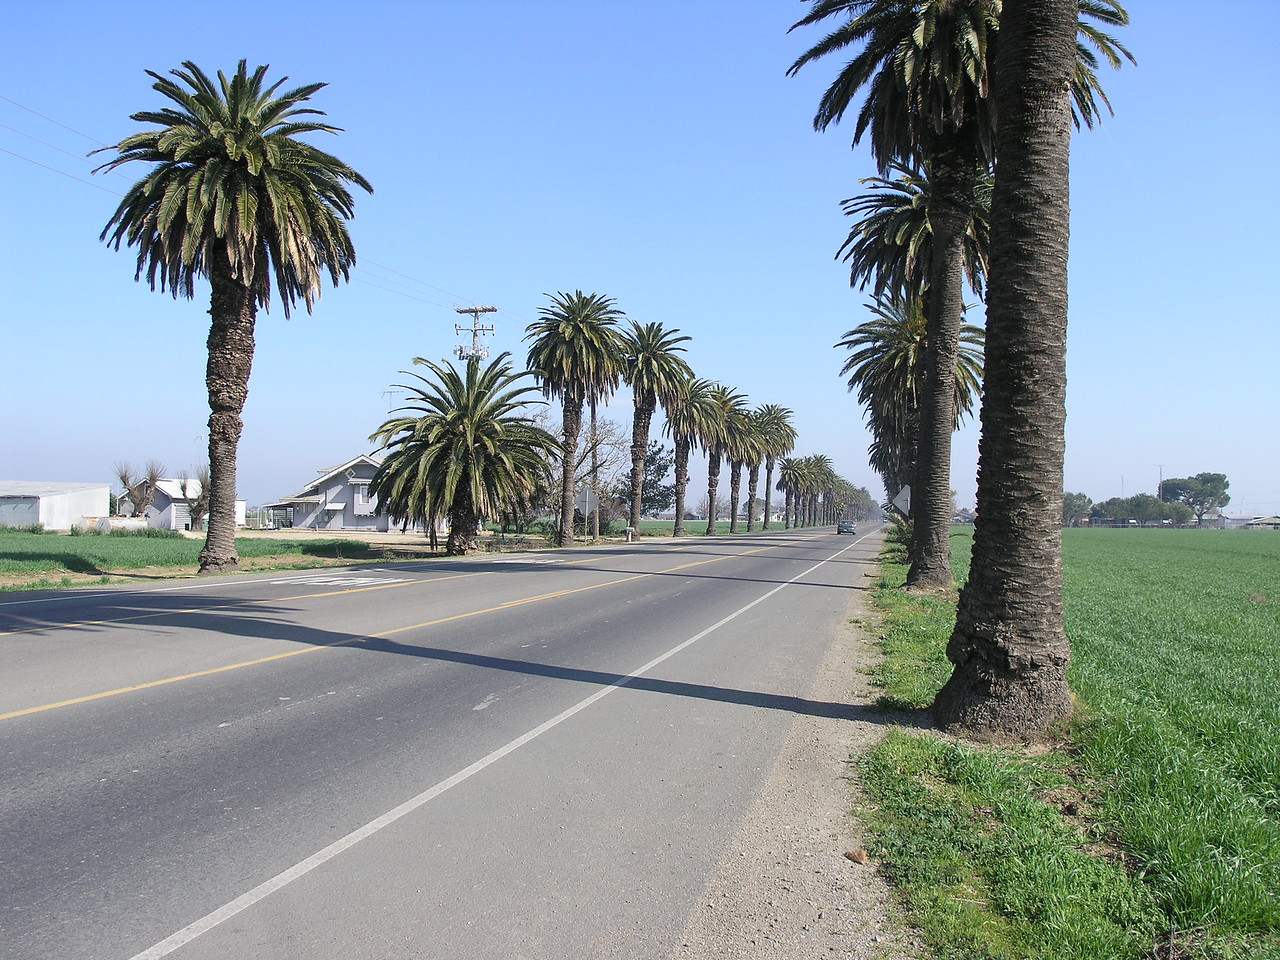 Las Palmas drive is well known for the line of Canary Island date palms from the san joaquin river to Patterson. My understanding is they were planted in the 20's